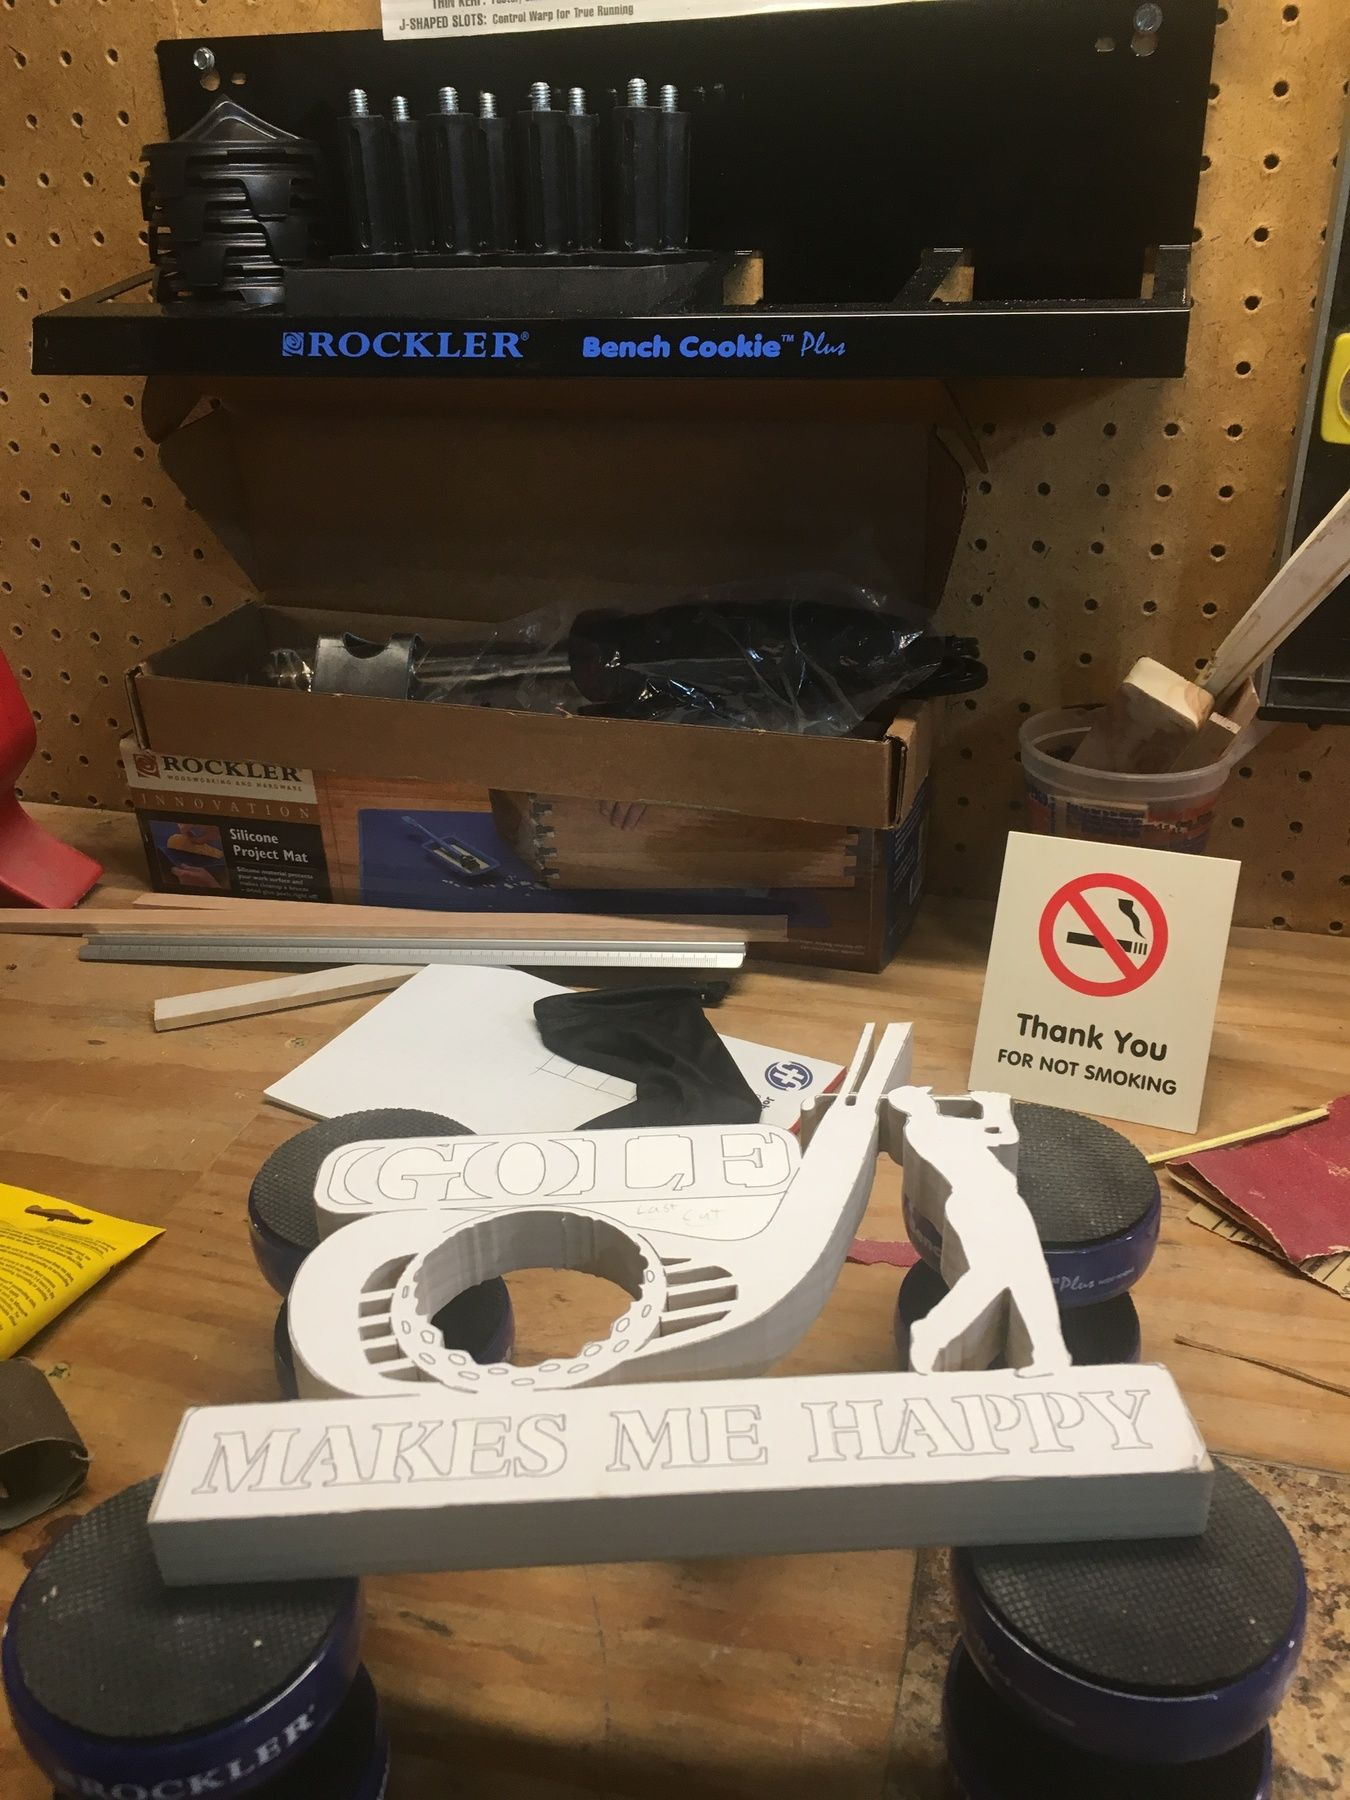 Superb Bench Cookie Plus Master Kit Wood Work And Laser Cutting Caraccident5 Cool Chair Designs And Ideas Caraccident5Info